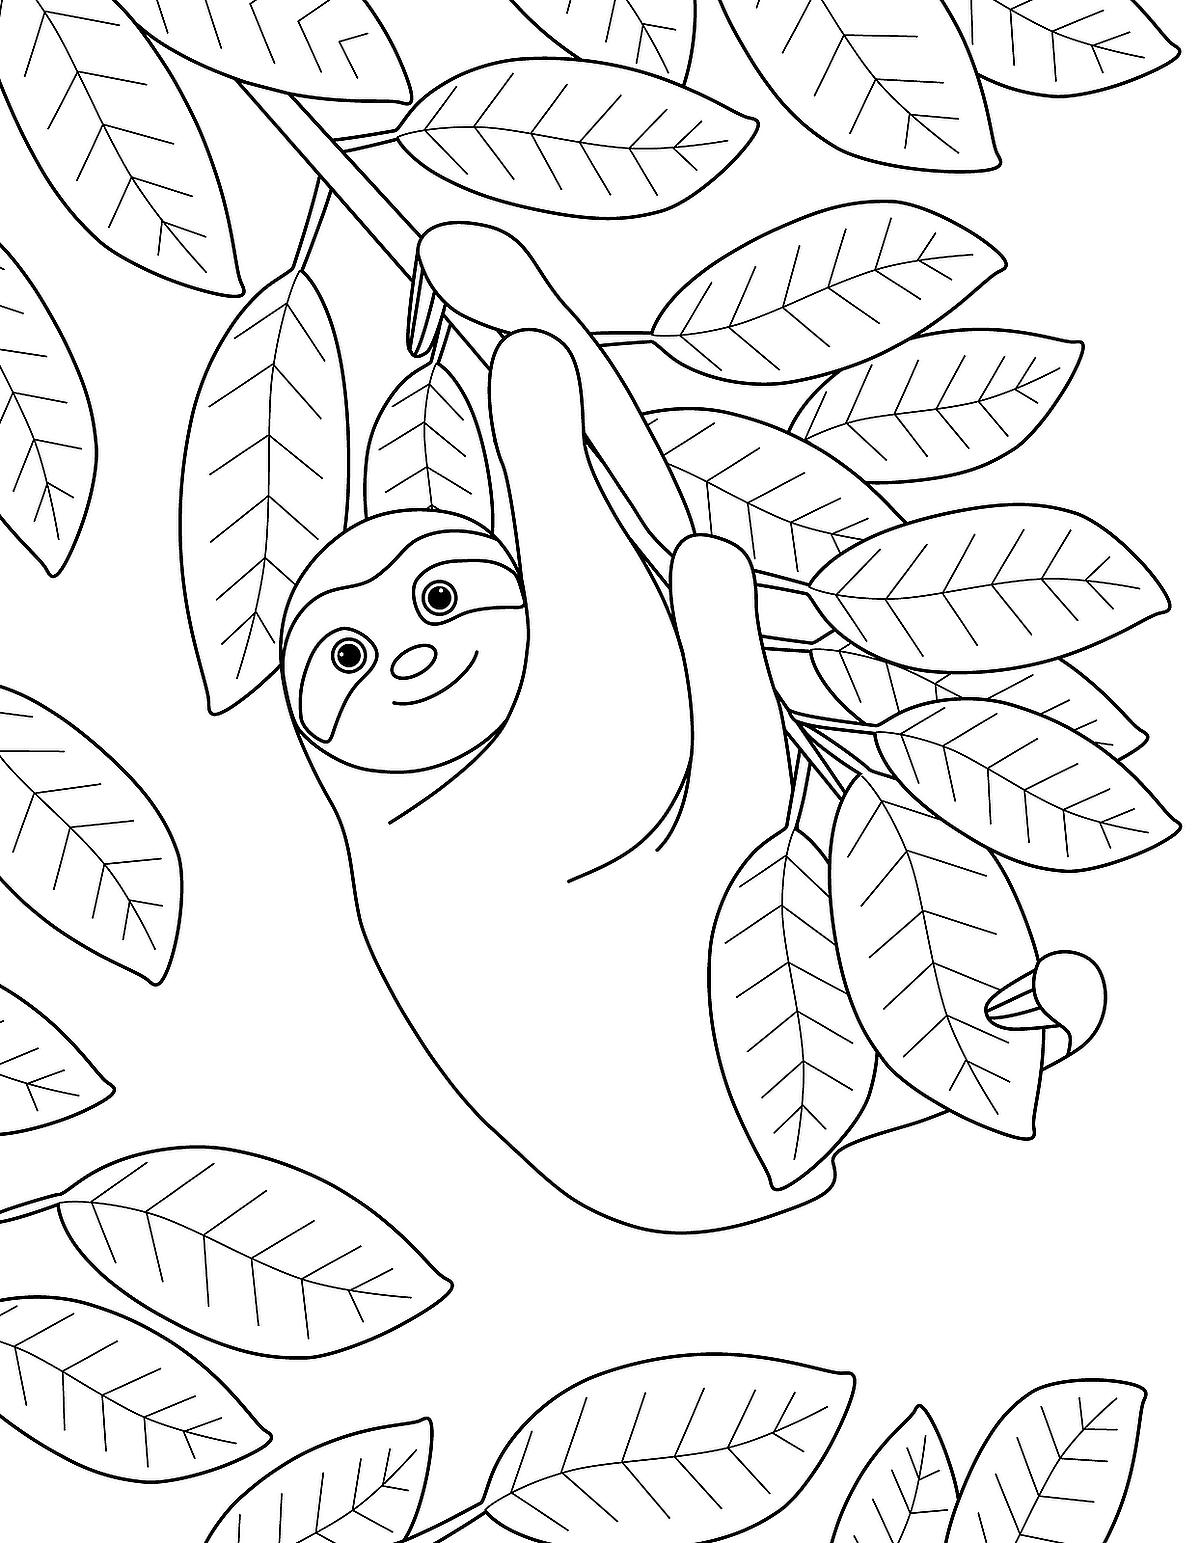 sloth pictures to print three toed sloth drawing play the best online pokies in to pictures print sloth